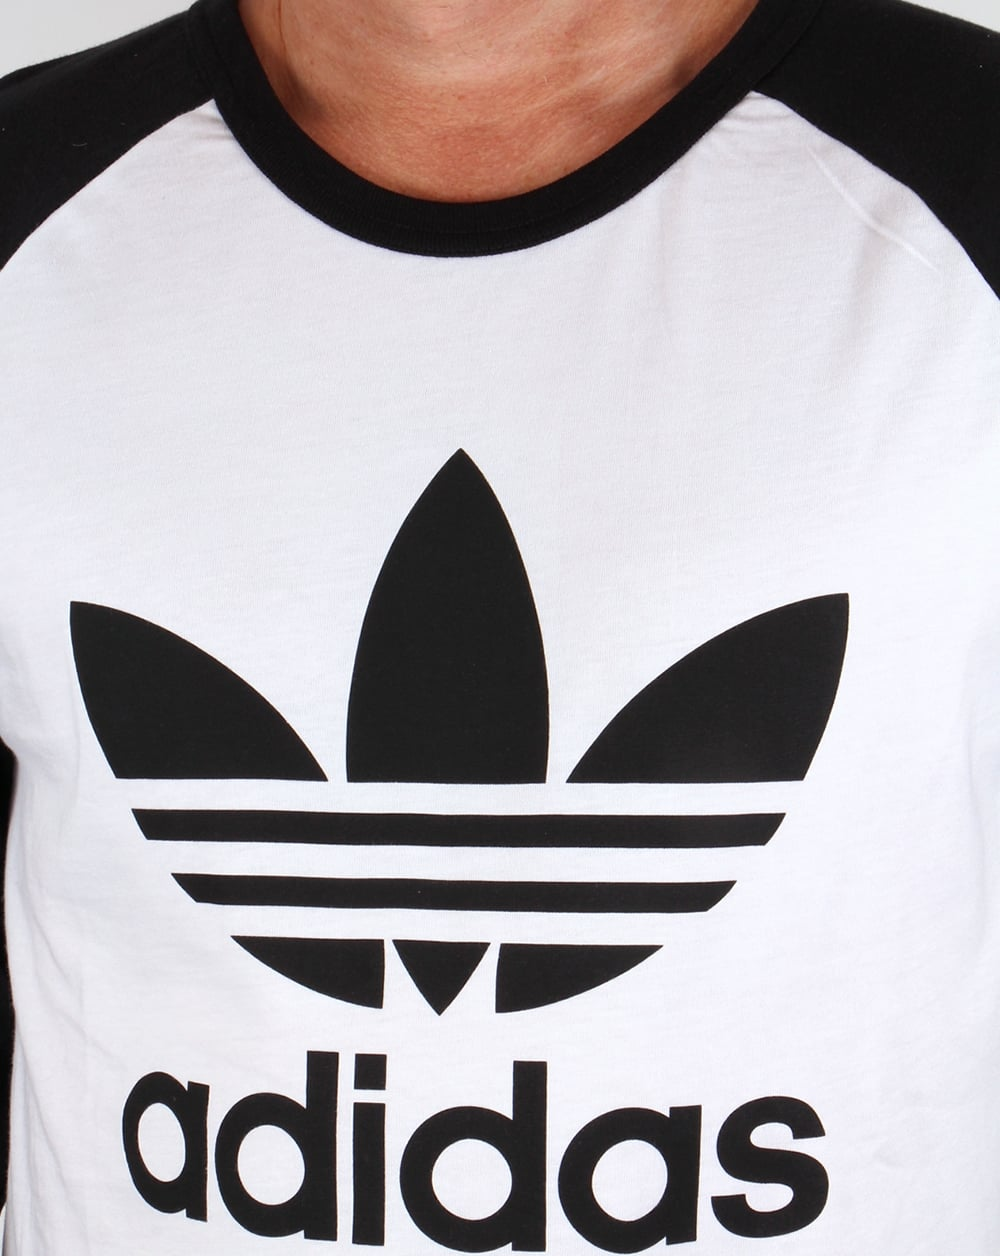 Adidas originals trefoil long sleeve raglan t shirt white for Adidas long sleeve t shirt with trefoil logo